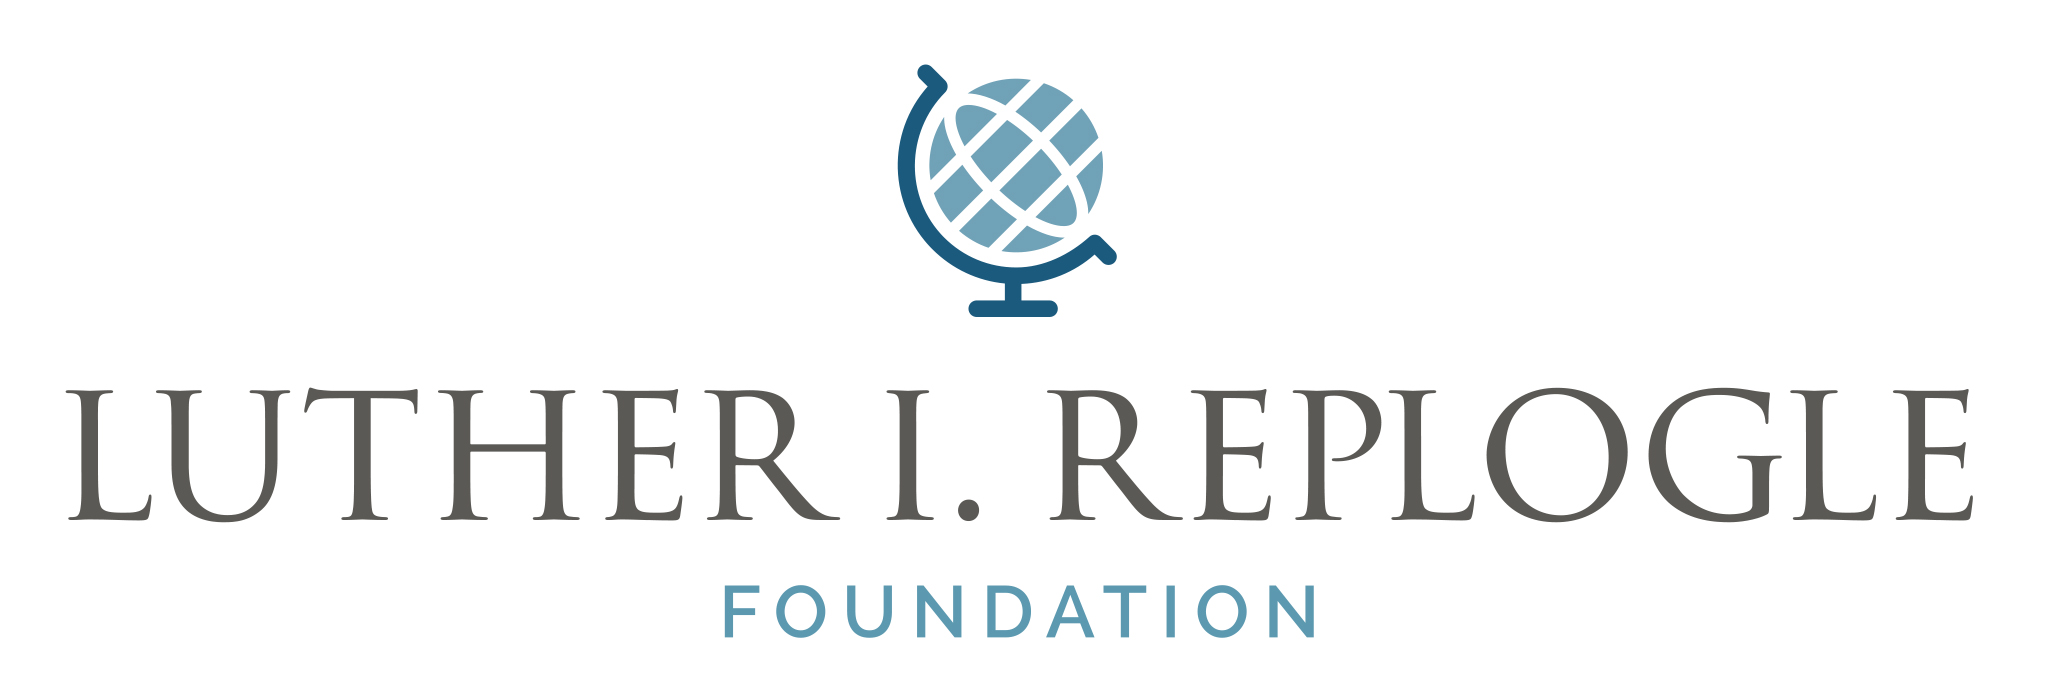 Replogle Foundation Logo